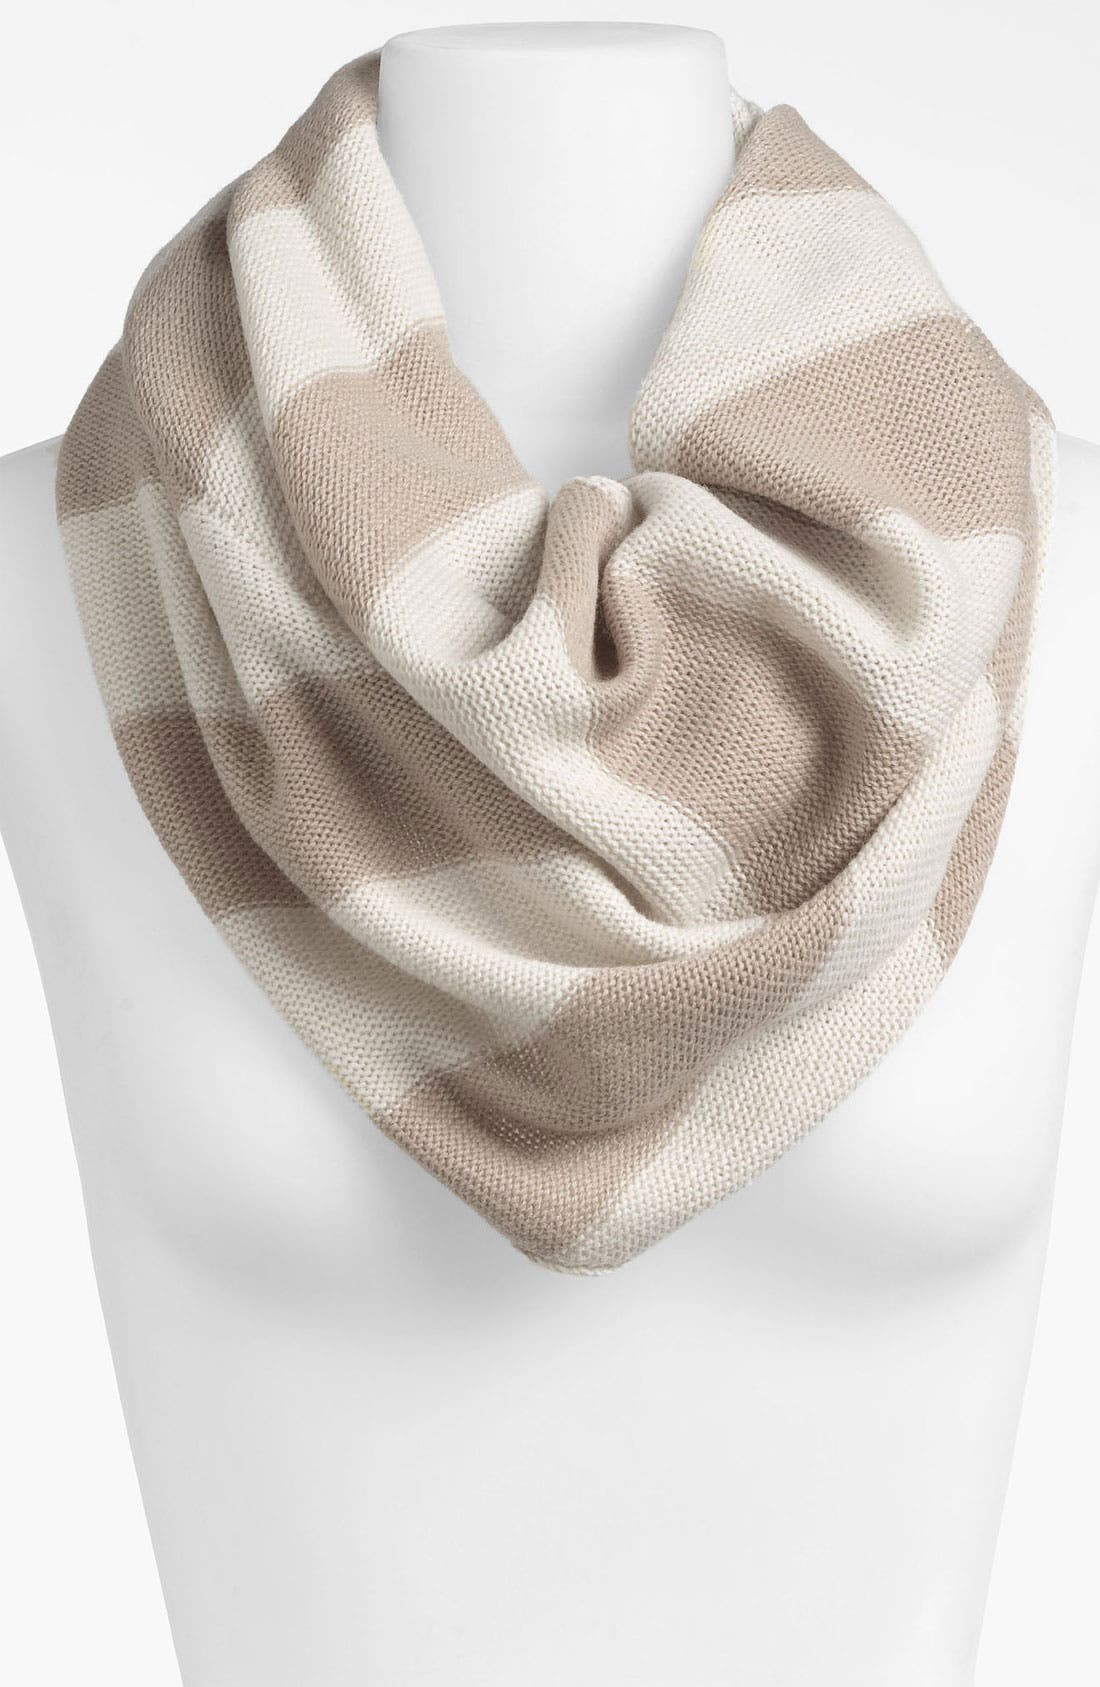 Alternate Image 1 Selected - BP. Rugby Stripe Infinity Scarf